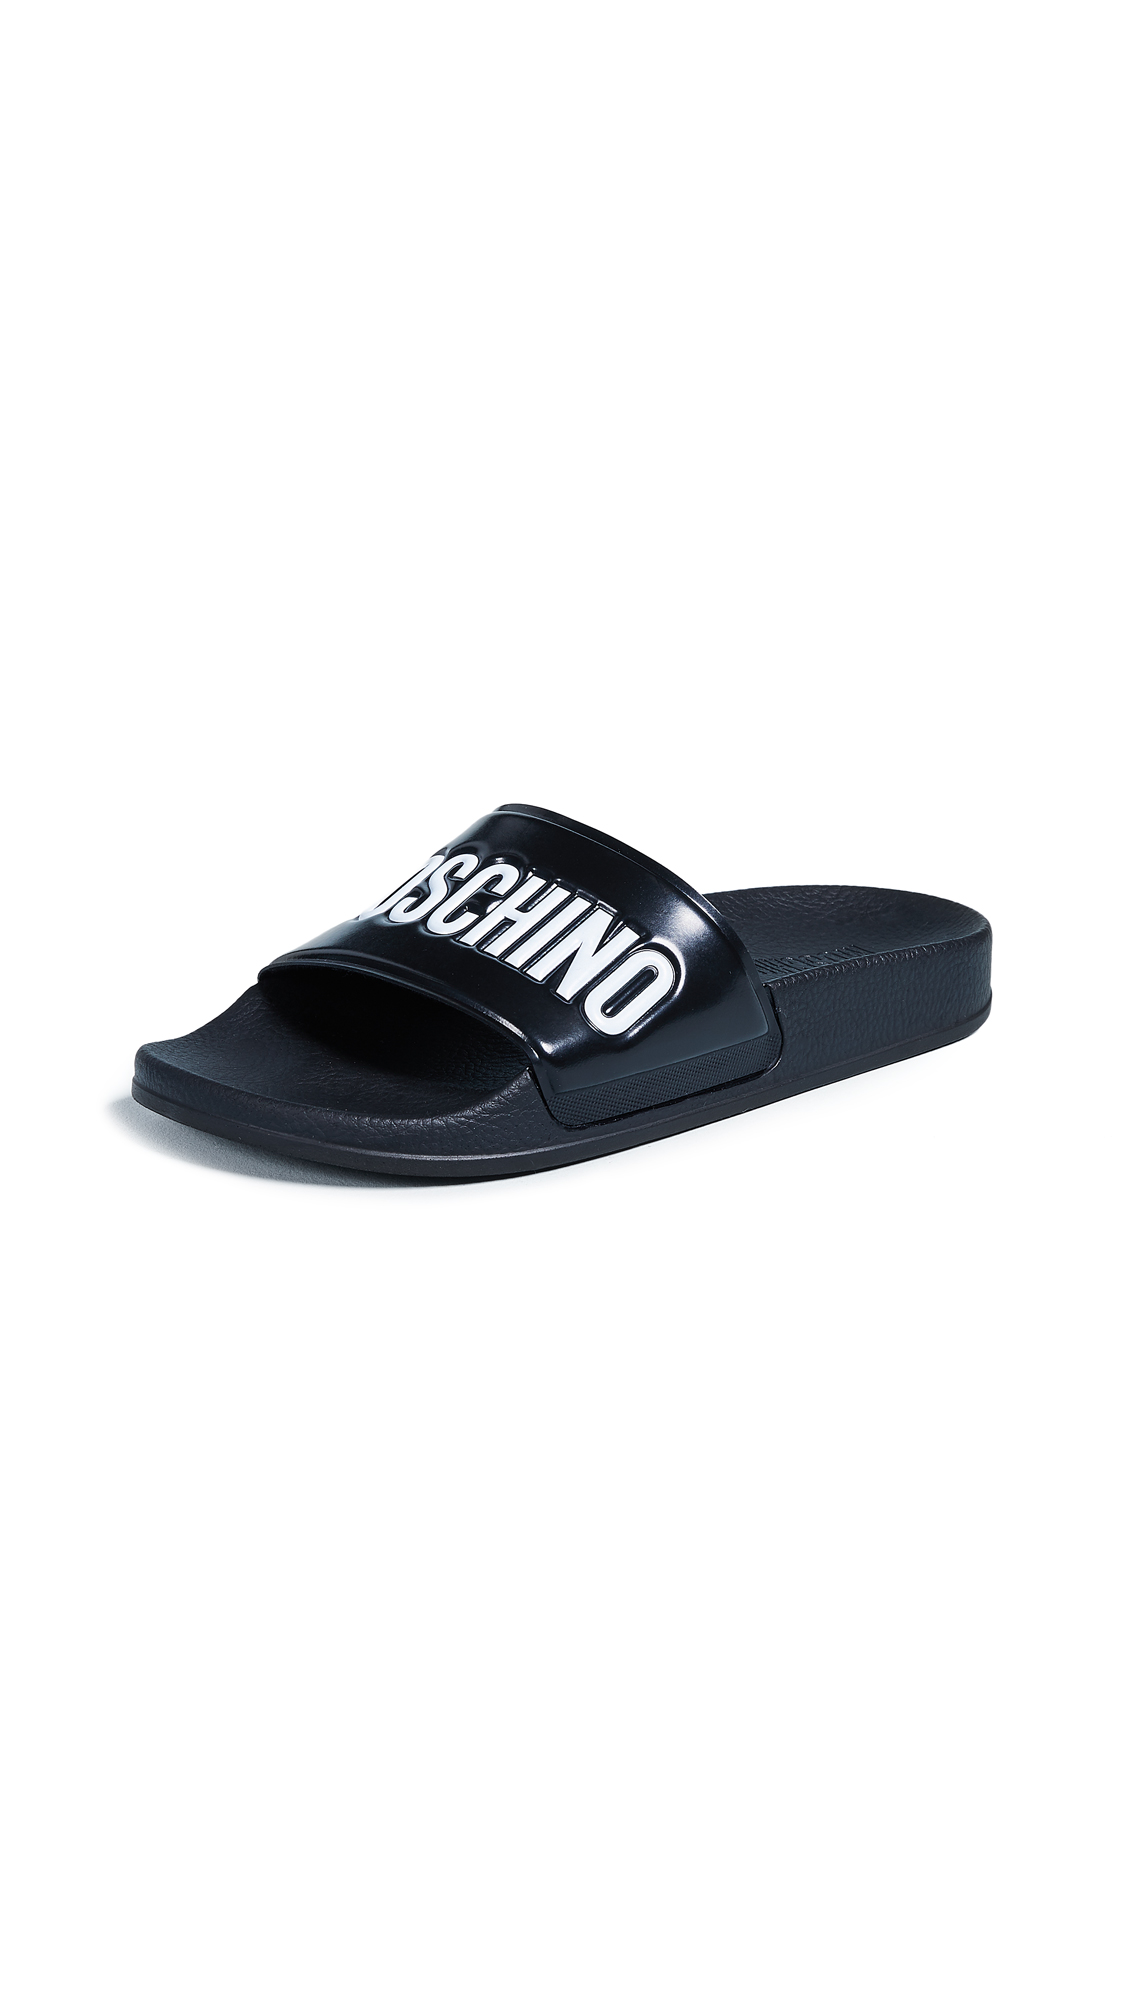 Moschino Moschino Logo Sandals - Black